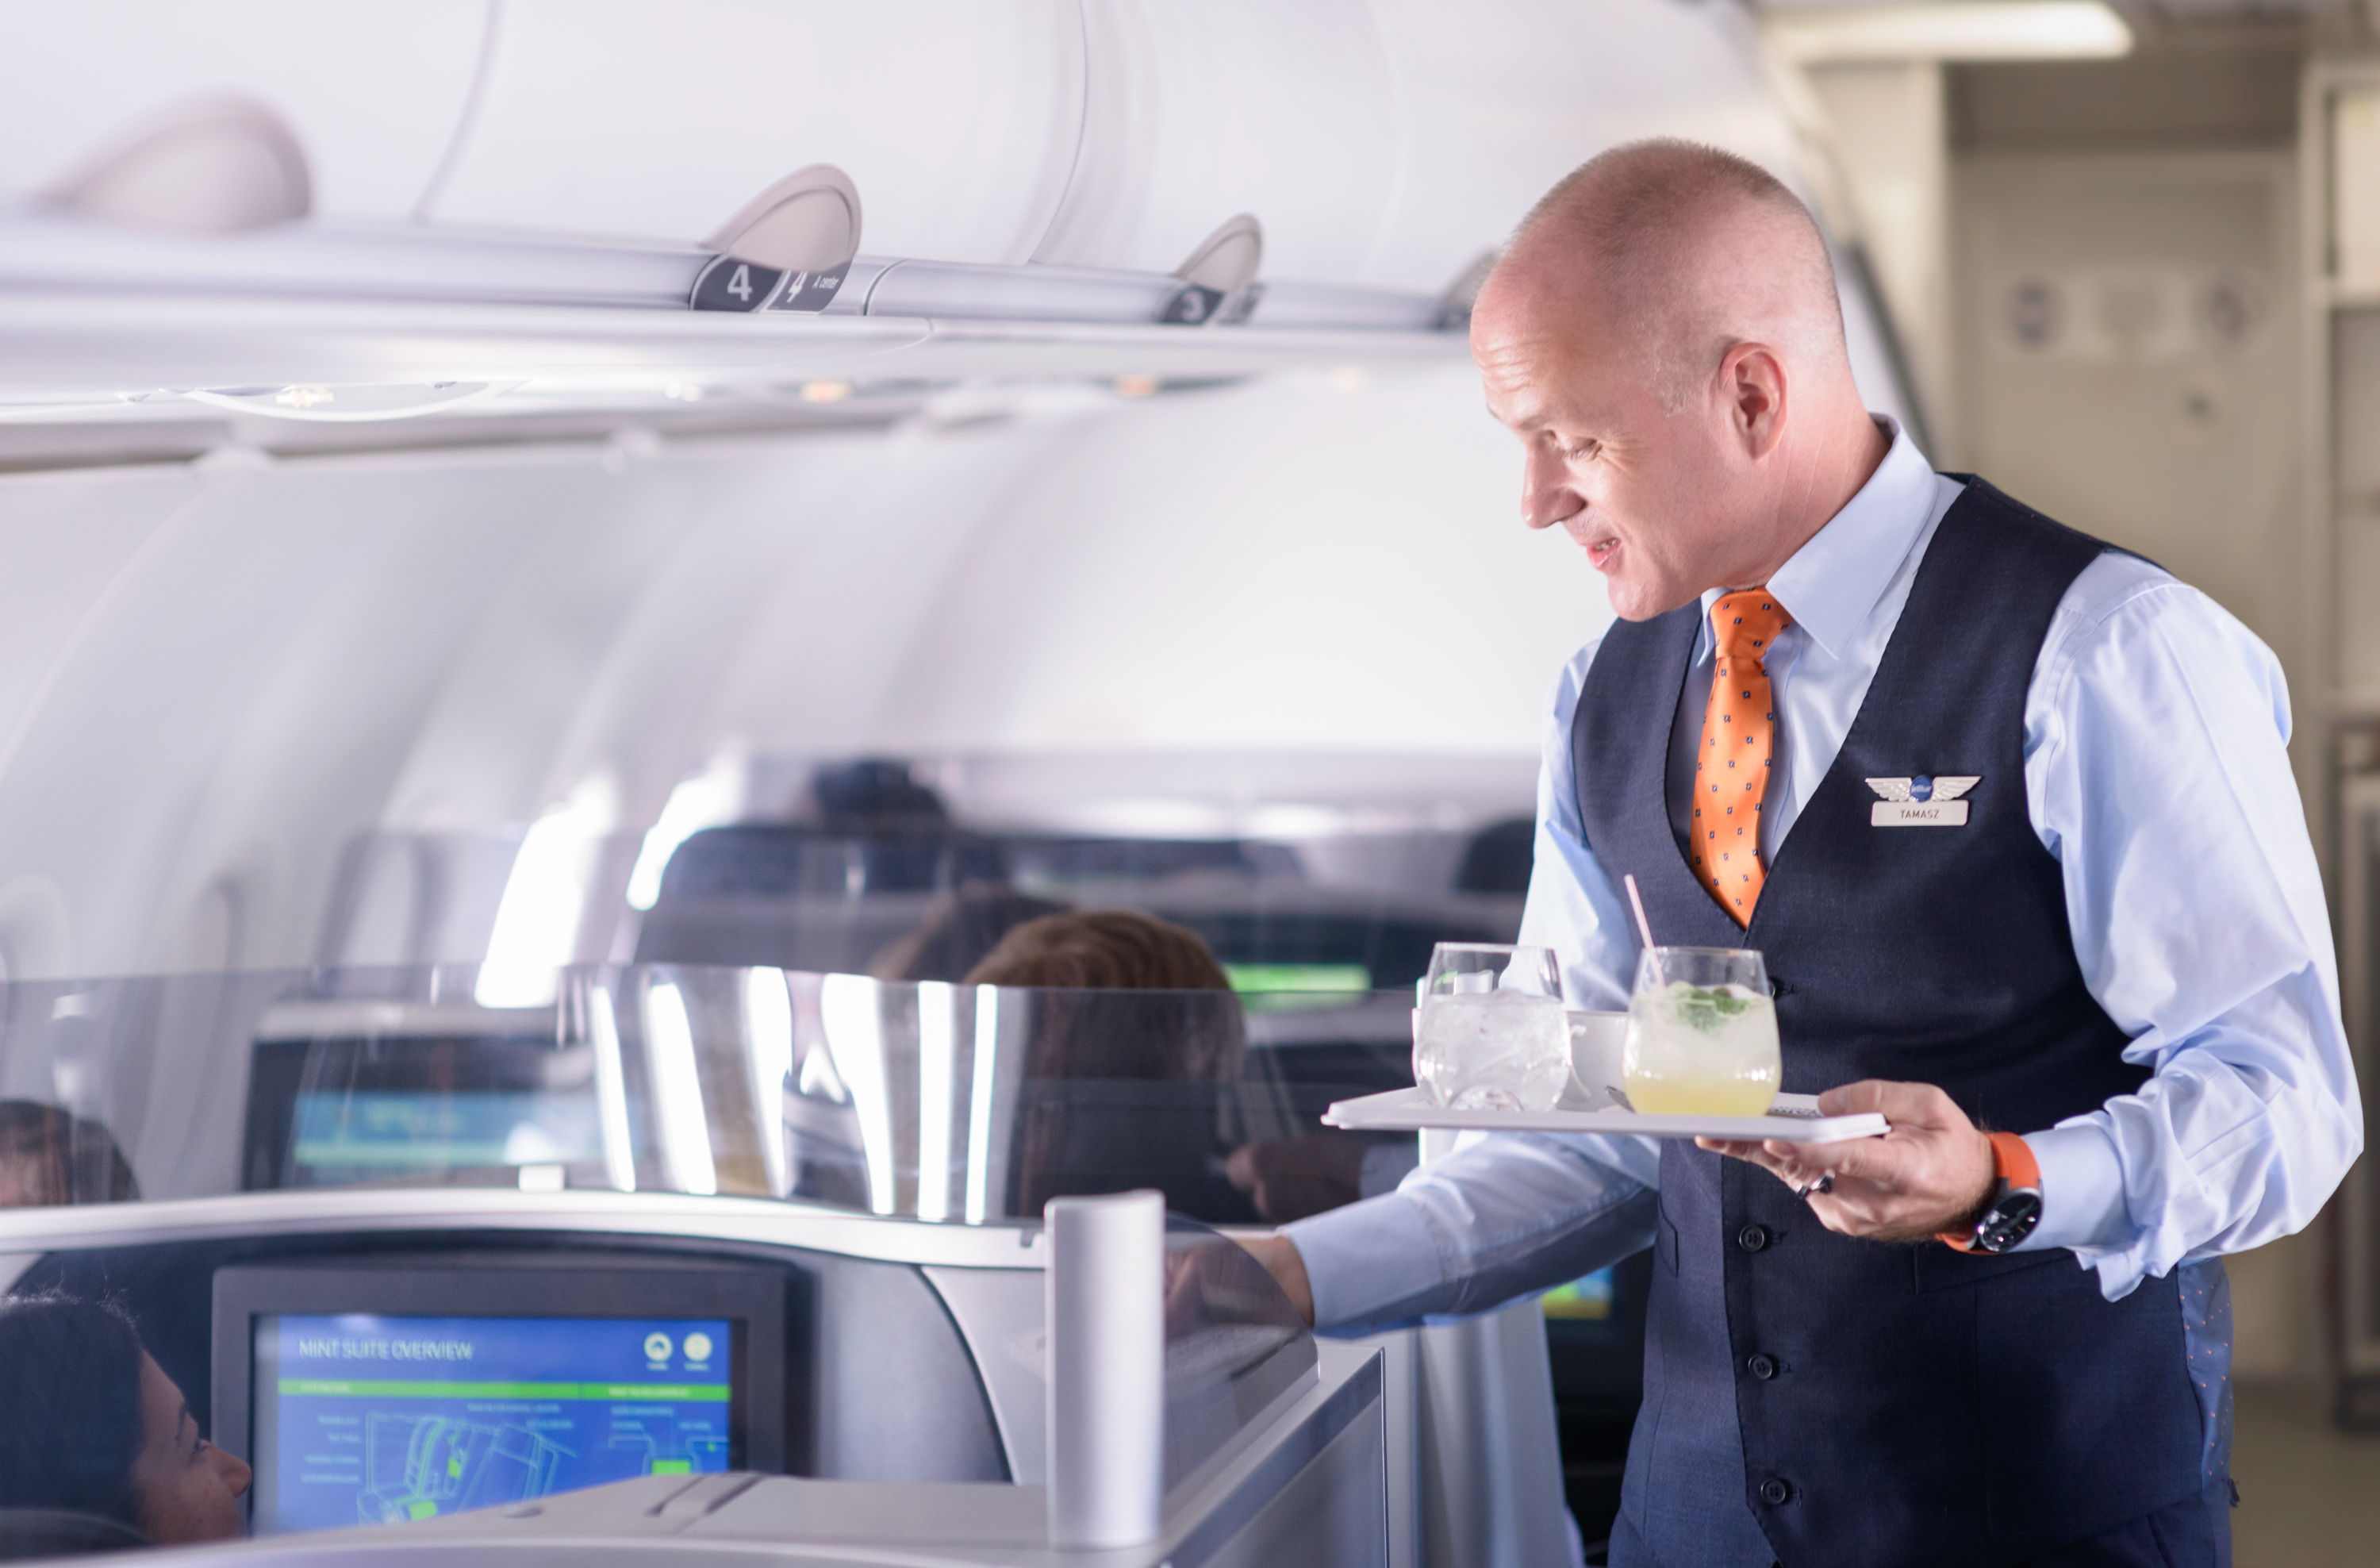 Man serving drinks on airplane